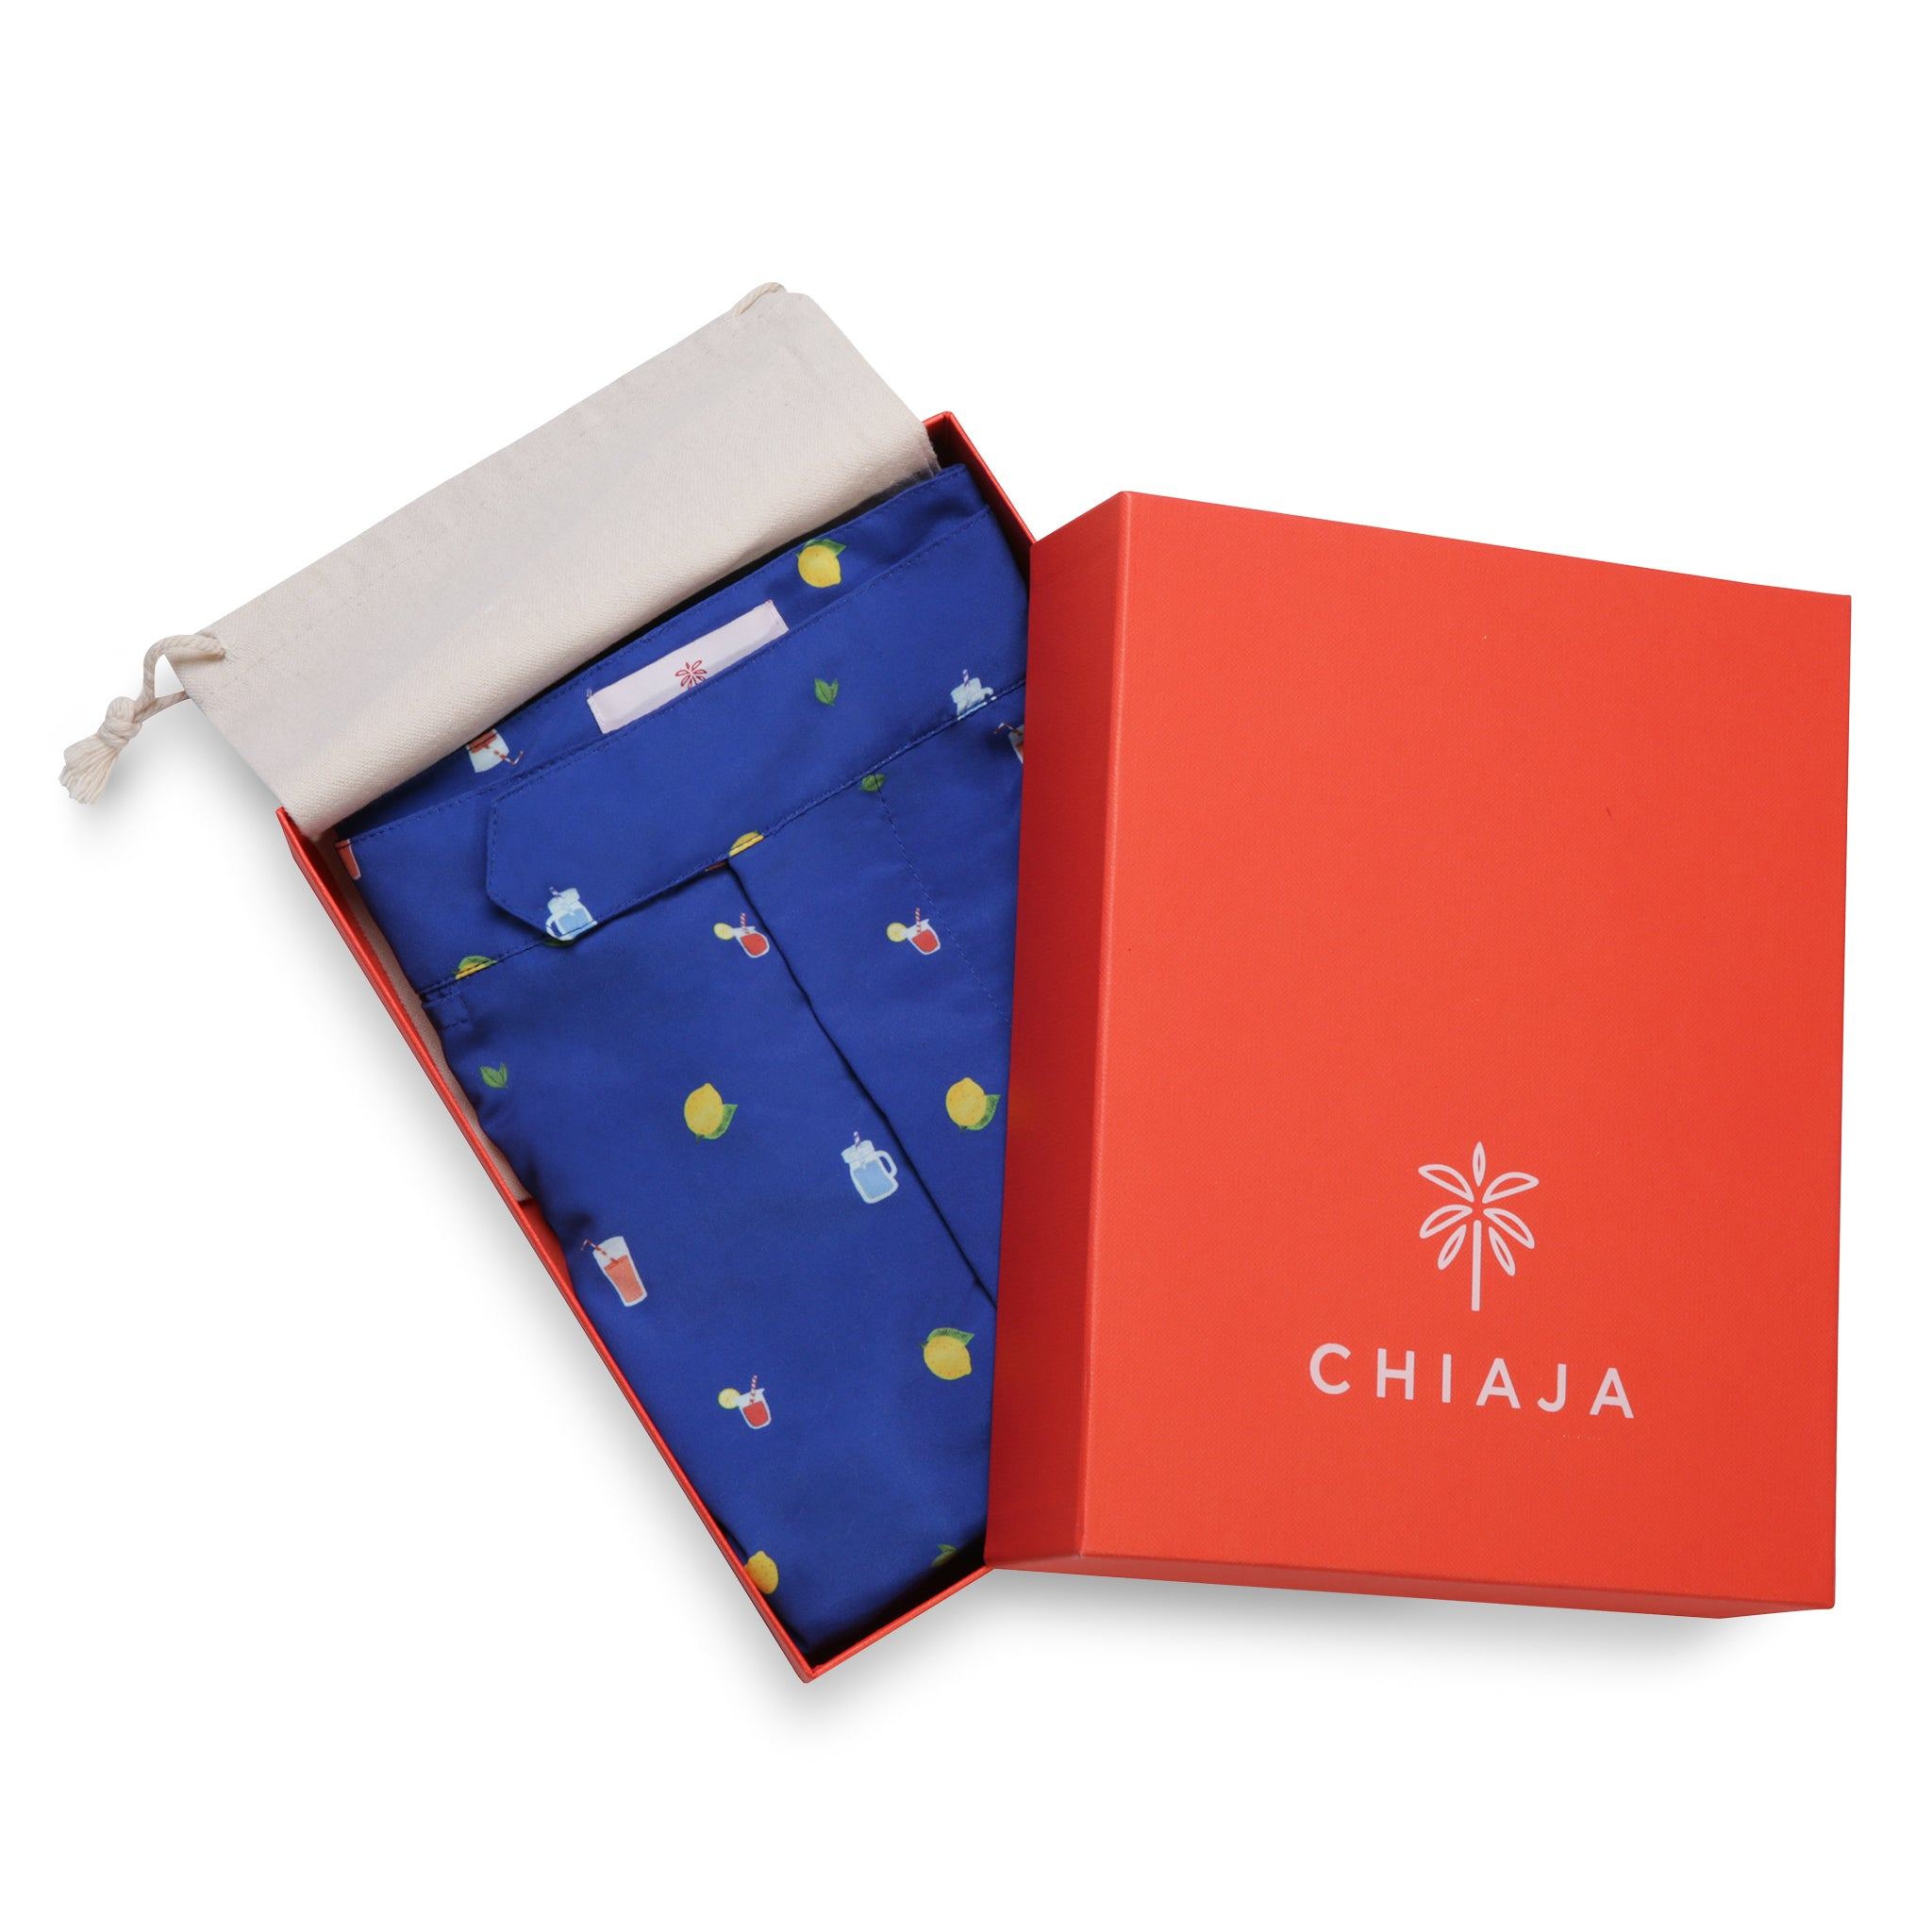 Chiaja Swim Shorts Gifting Guide - Handmade in Italy